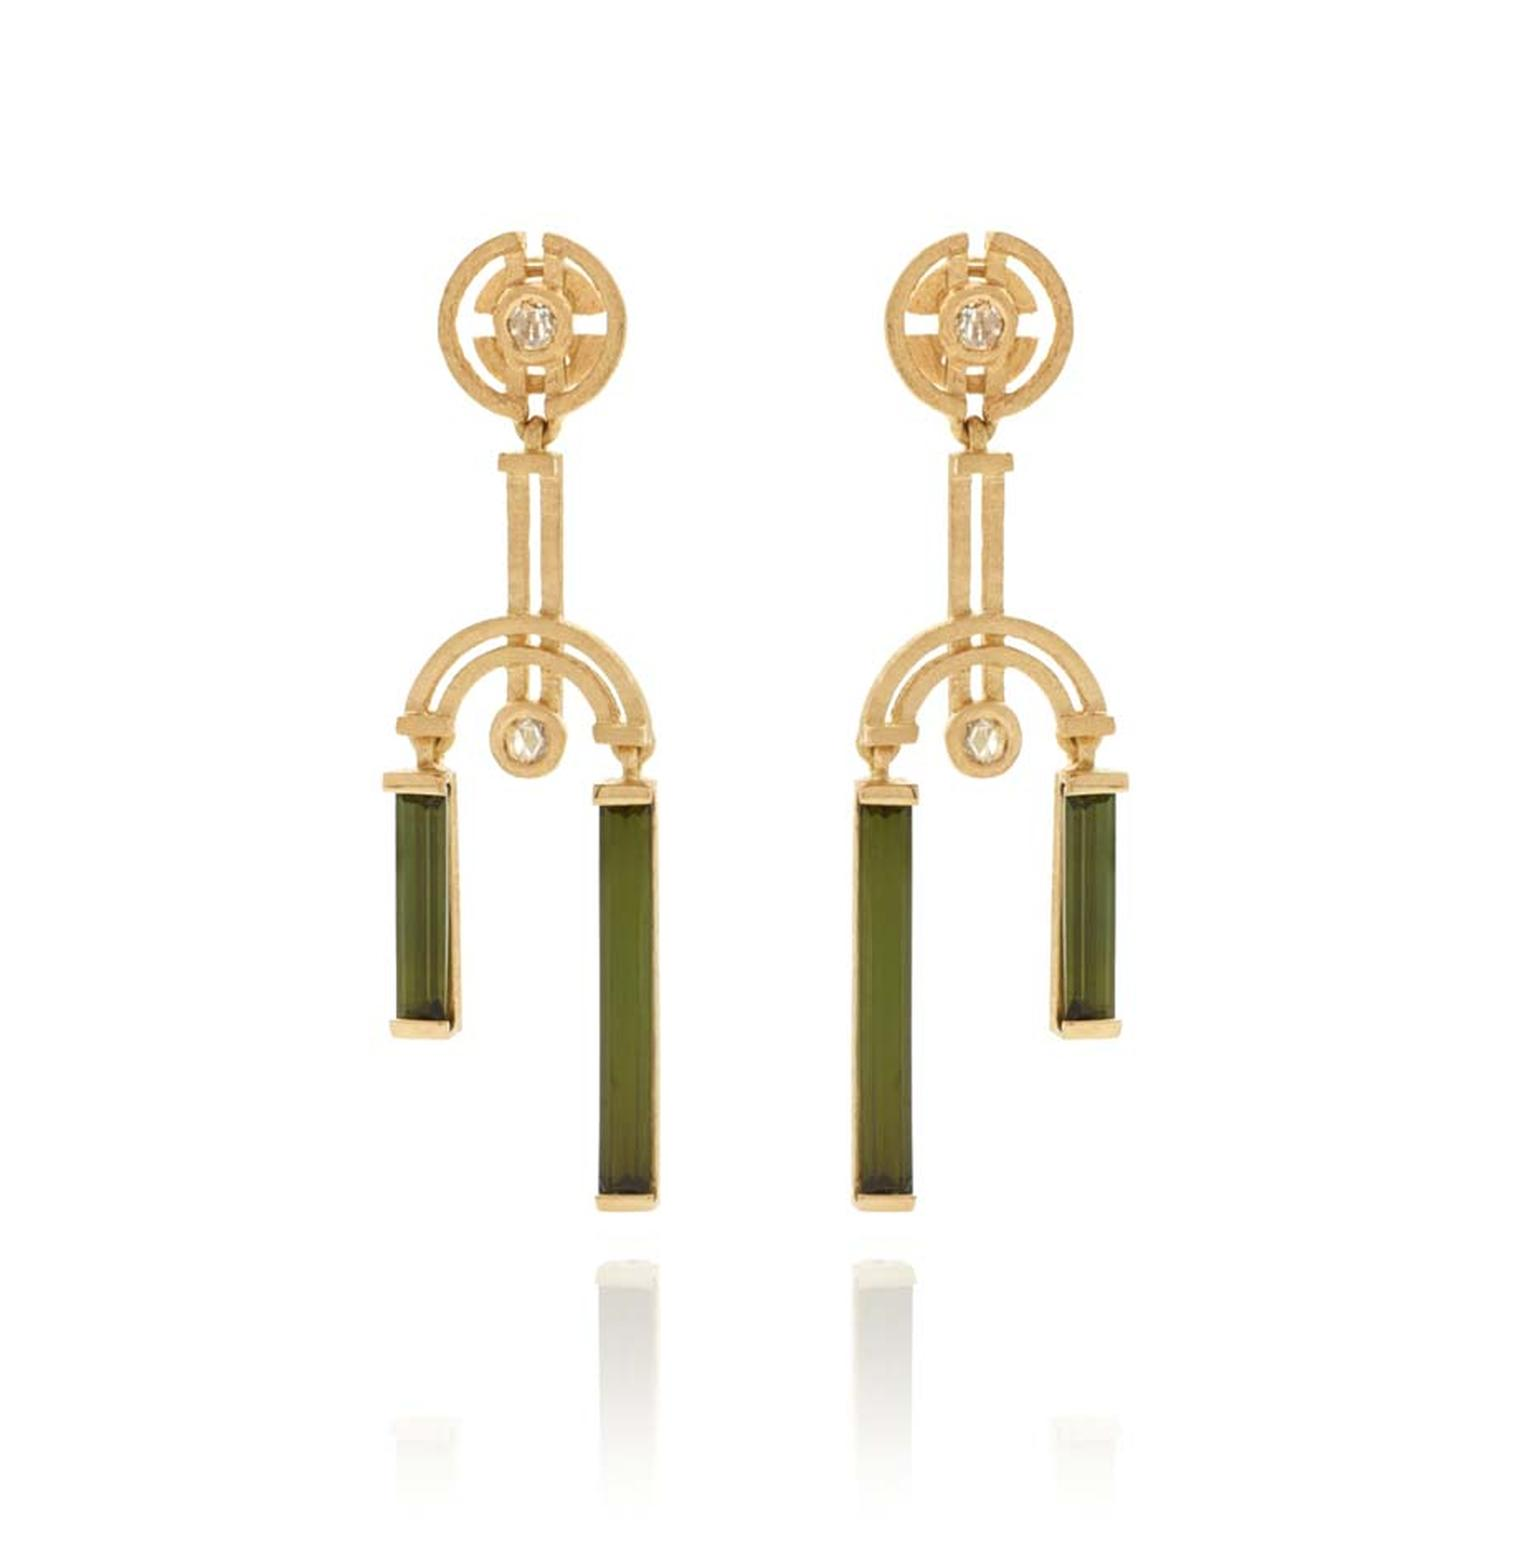 Shimell and Madden's Symmetry collection Double Drop earrings with rose-cut white diamonds and baguette-cut green tourmalines.